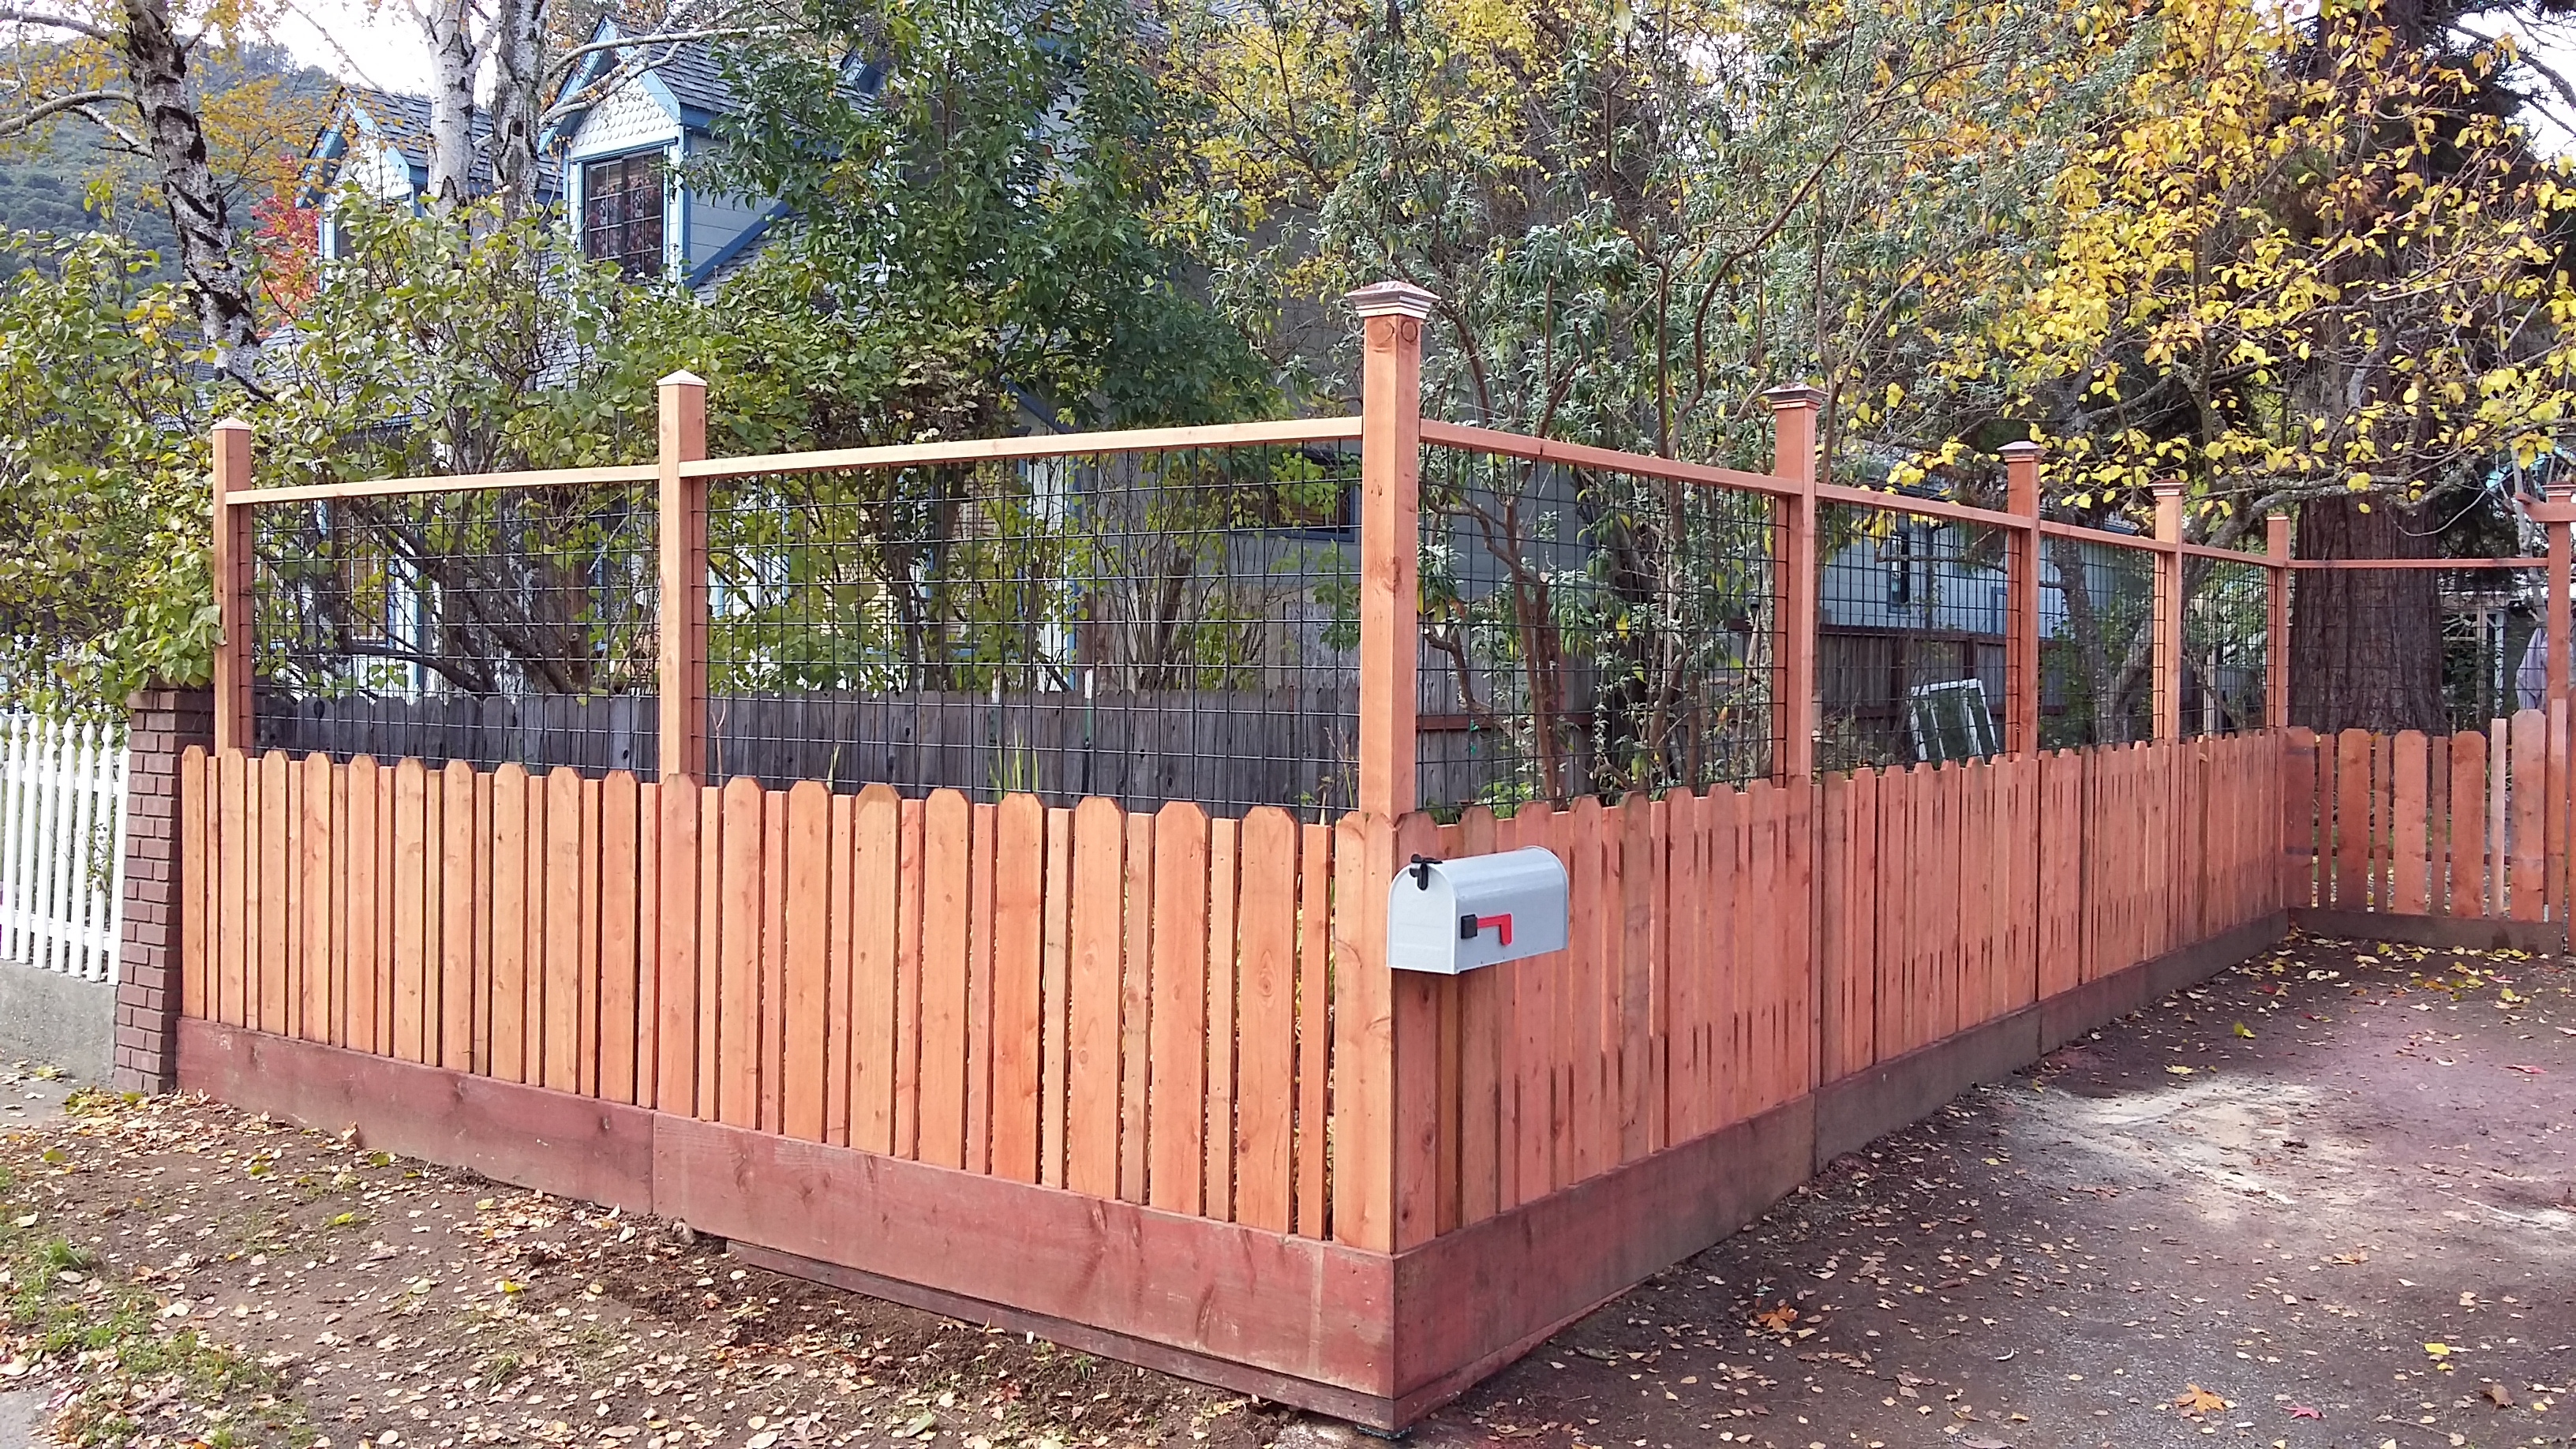 Redwood fence with hog wire